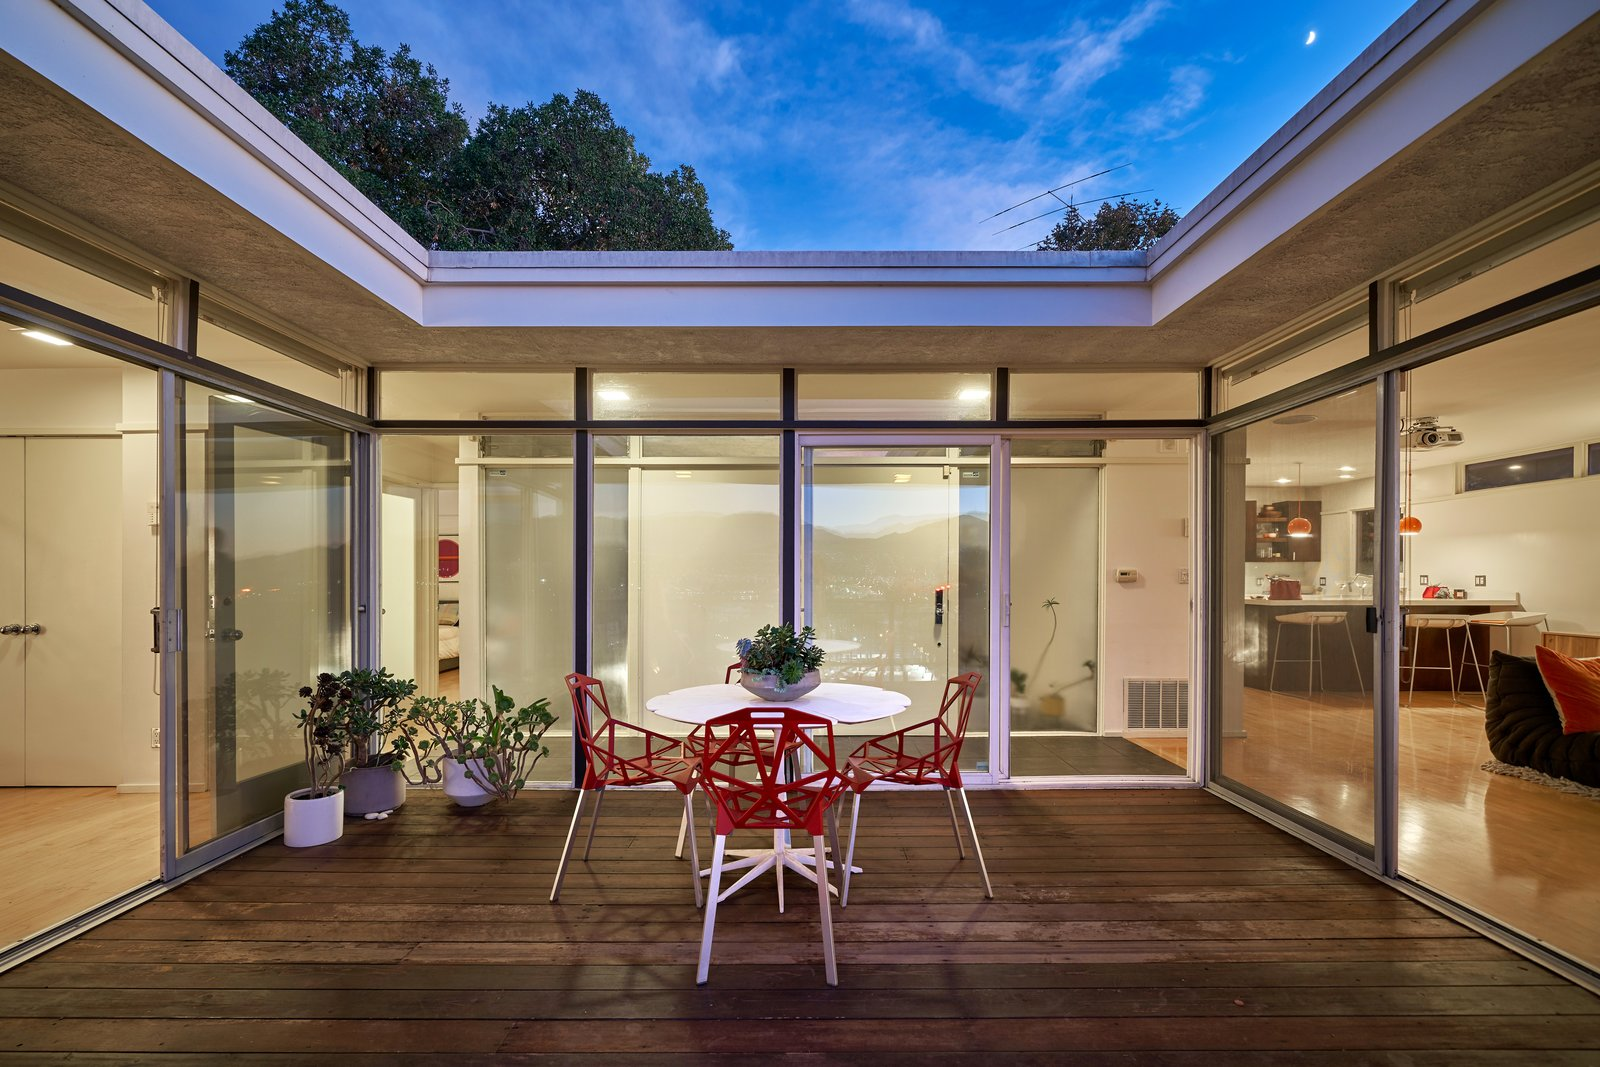 The patio is open to the sky above, allowing for light to flood the rooms that surround it. Tagged: Outdoor and Wood Patio, Porch, Deck.  Photo 5 of 14 in A Midcentury-Modern Home in L.A. Designed by Richard Banta Is For Sale For $899K